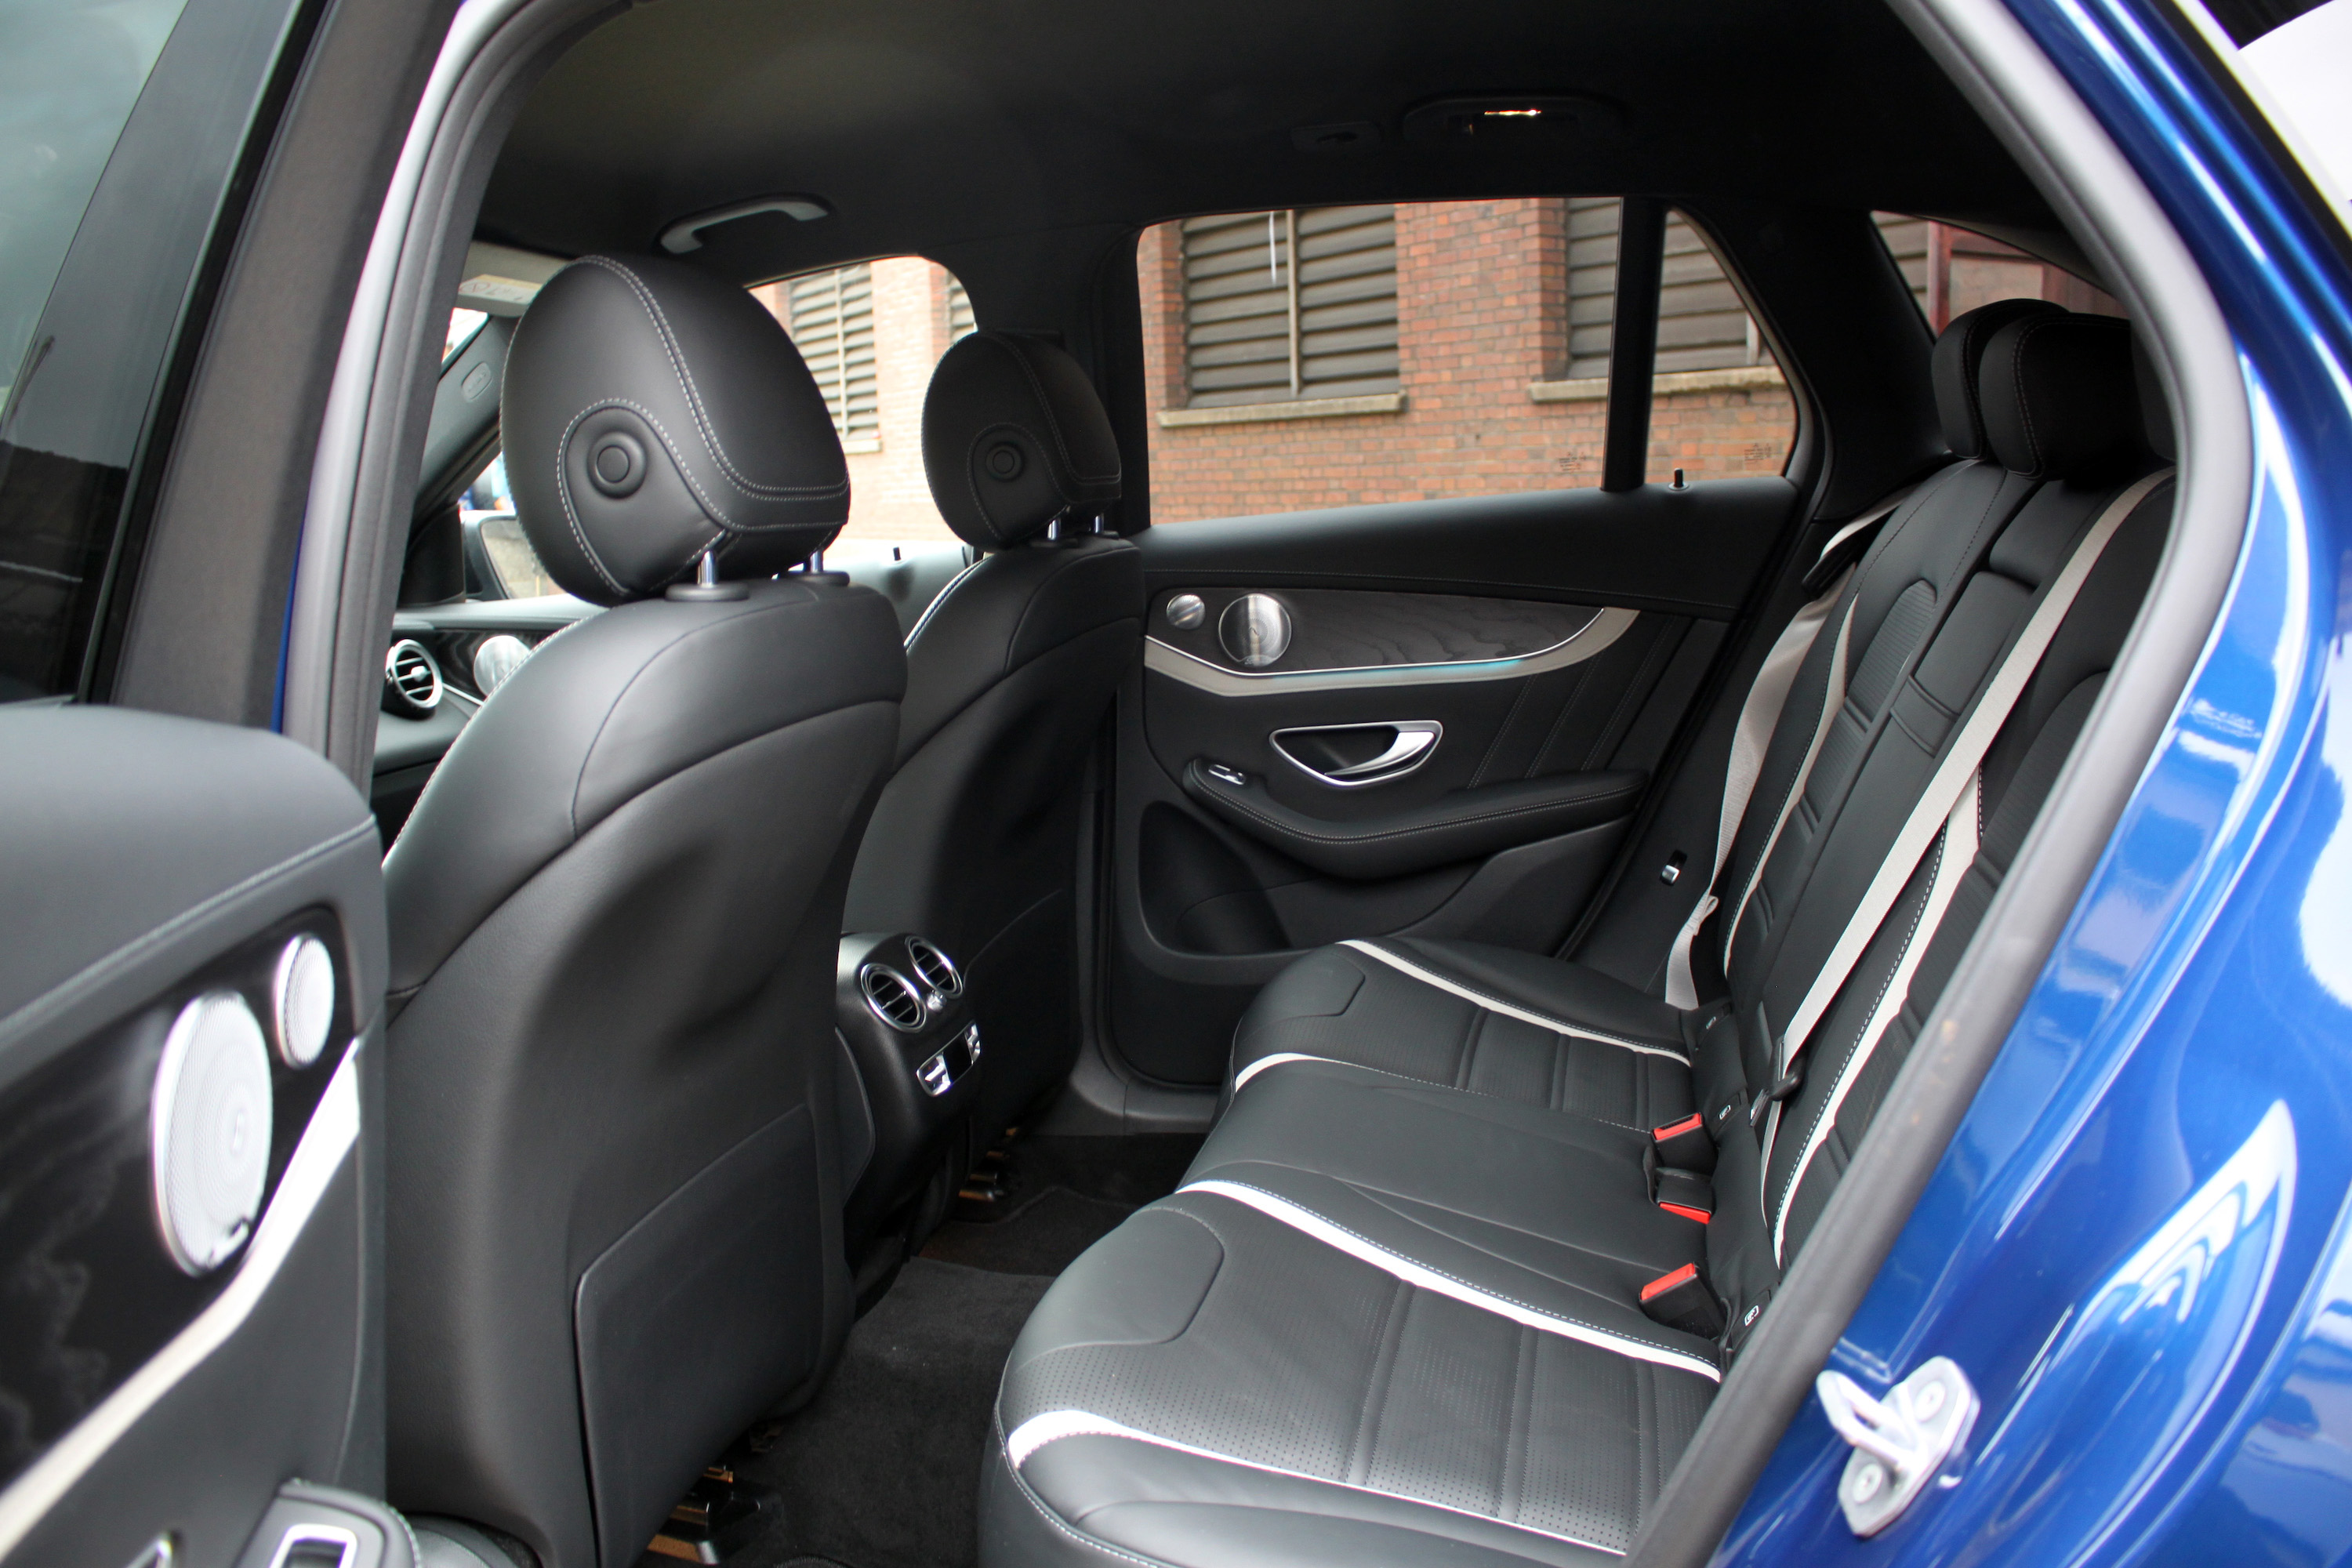 http://www.autoguide.com/blog/wp-content/gallery/2018-mercedes-amg-glc-63-s-4matic-review/2018-Mercedes-AMG-GLC-63-S-4MATIC-Review-SHA-4.JPG